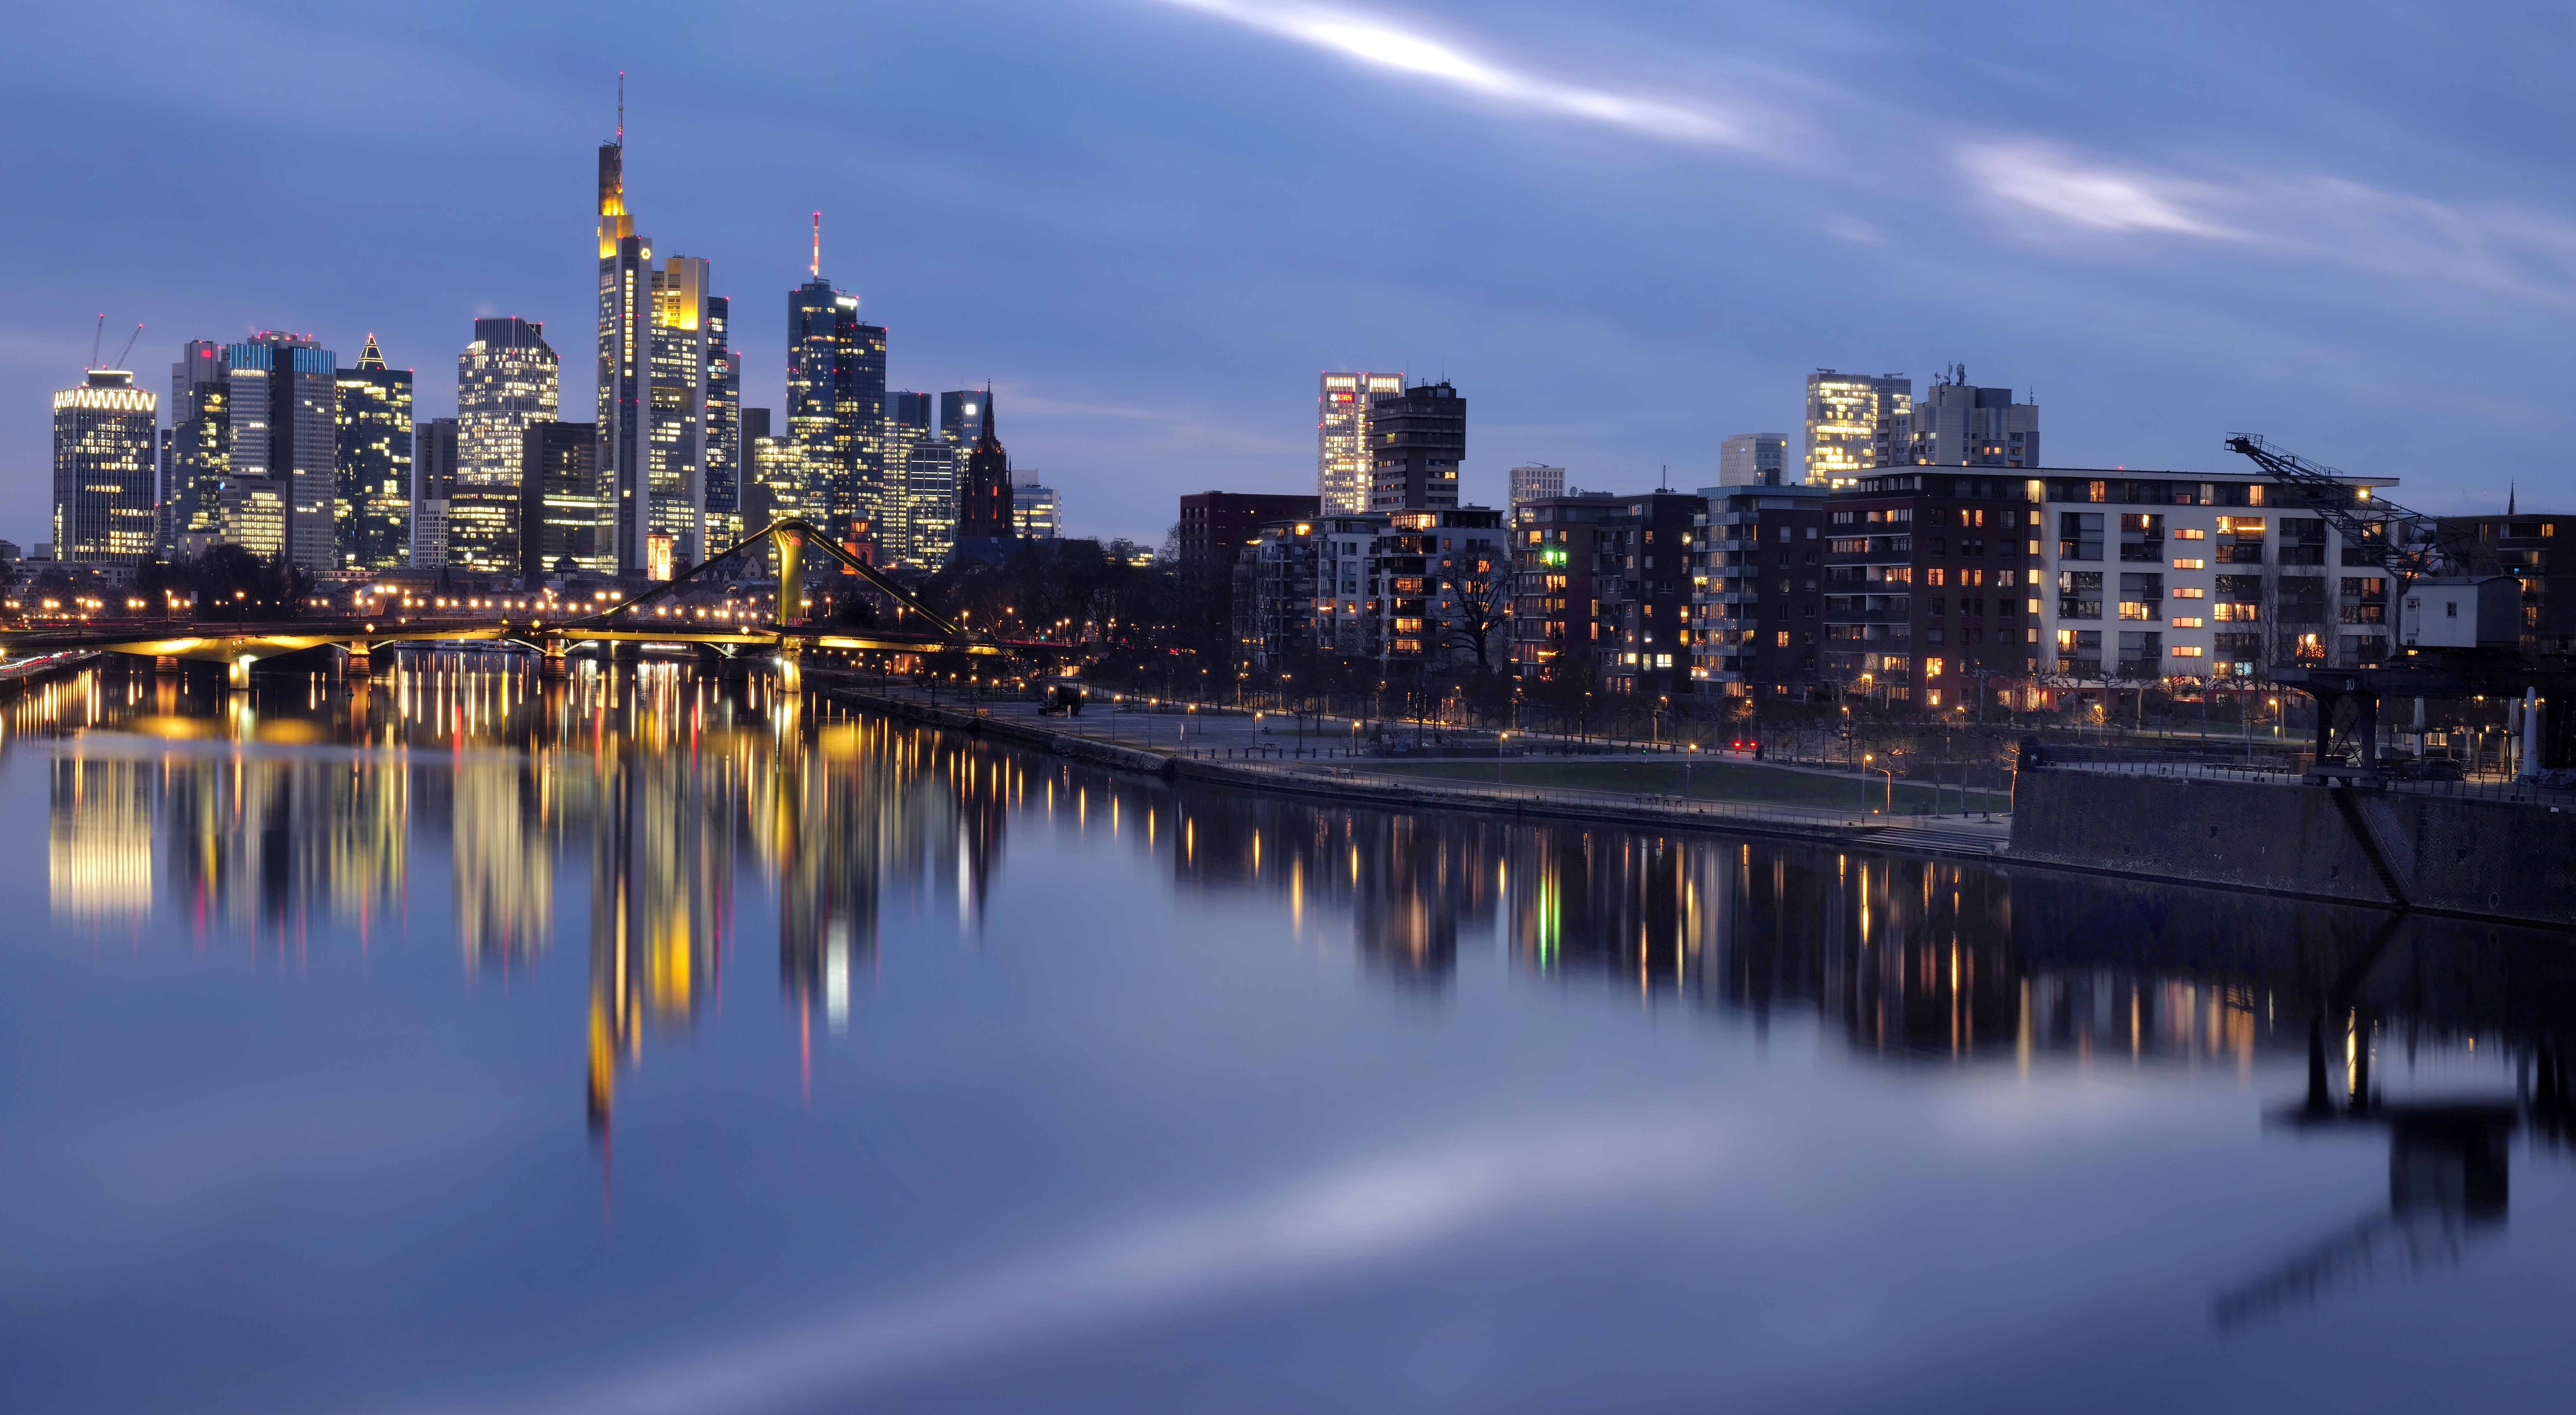 The skyline with its financial district is photographed as the spread of the coronavirus disease (COVID-19) continues during an extended lockdown in Frankfurt, Germany, January 14, 2021.  REUTERS/Kai Pfaffenbach